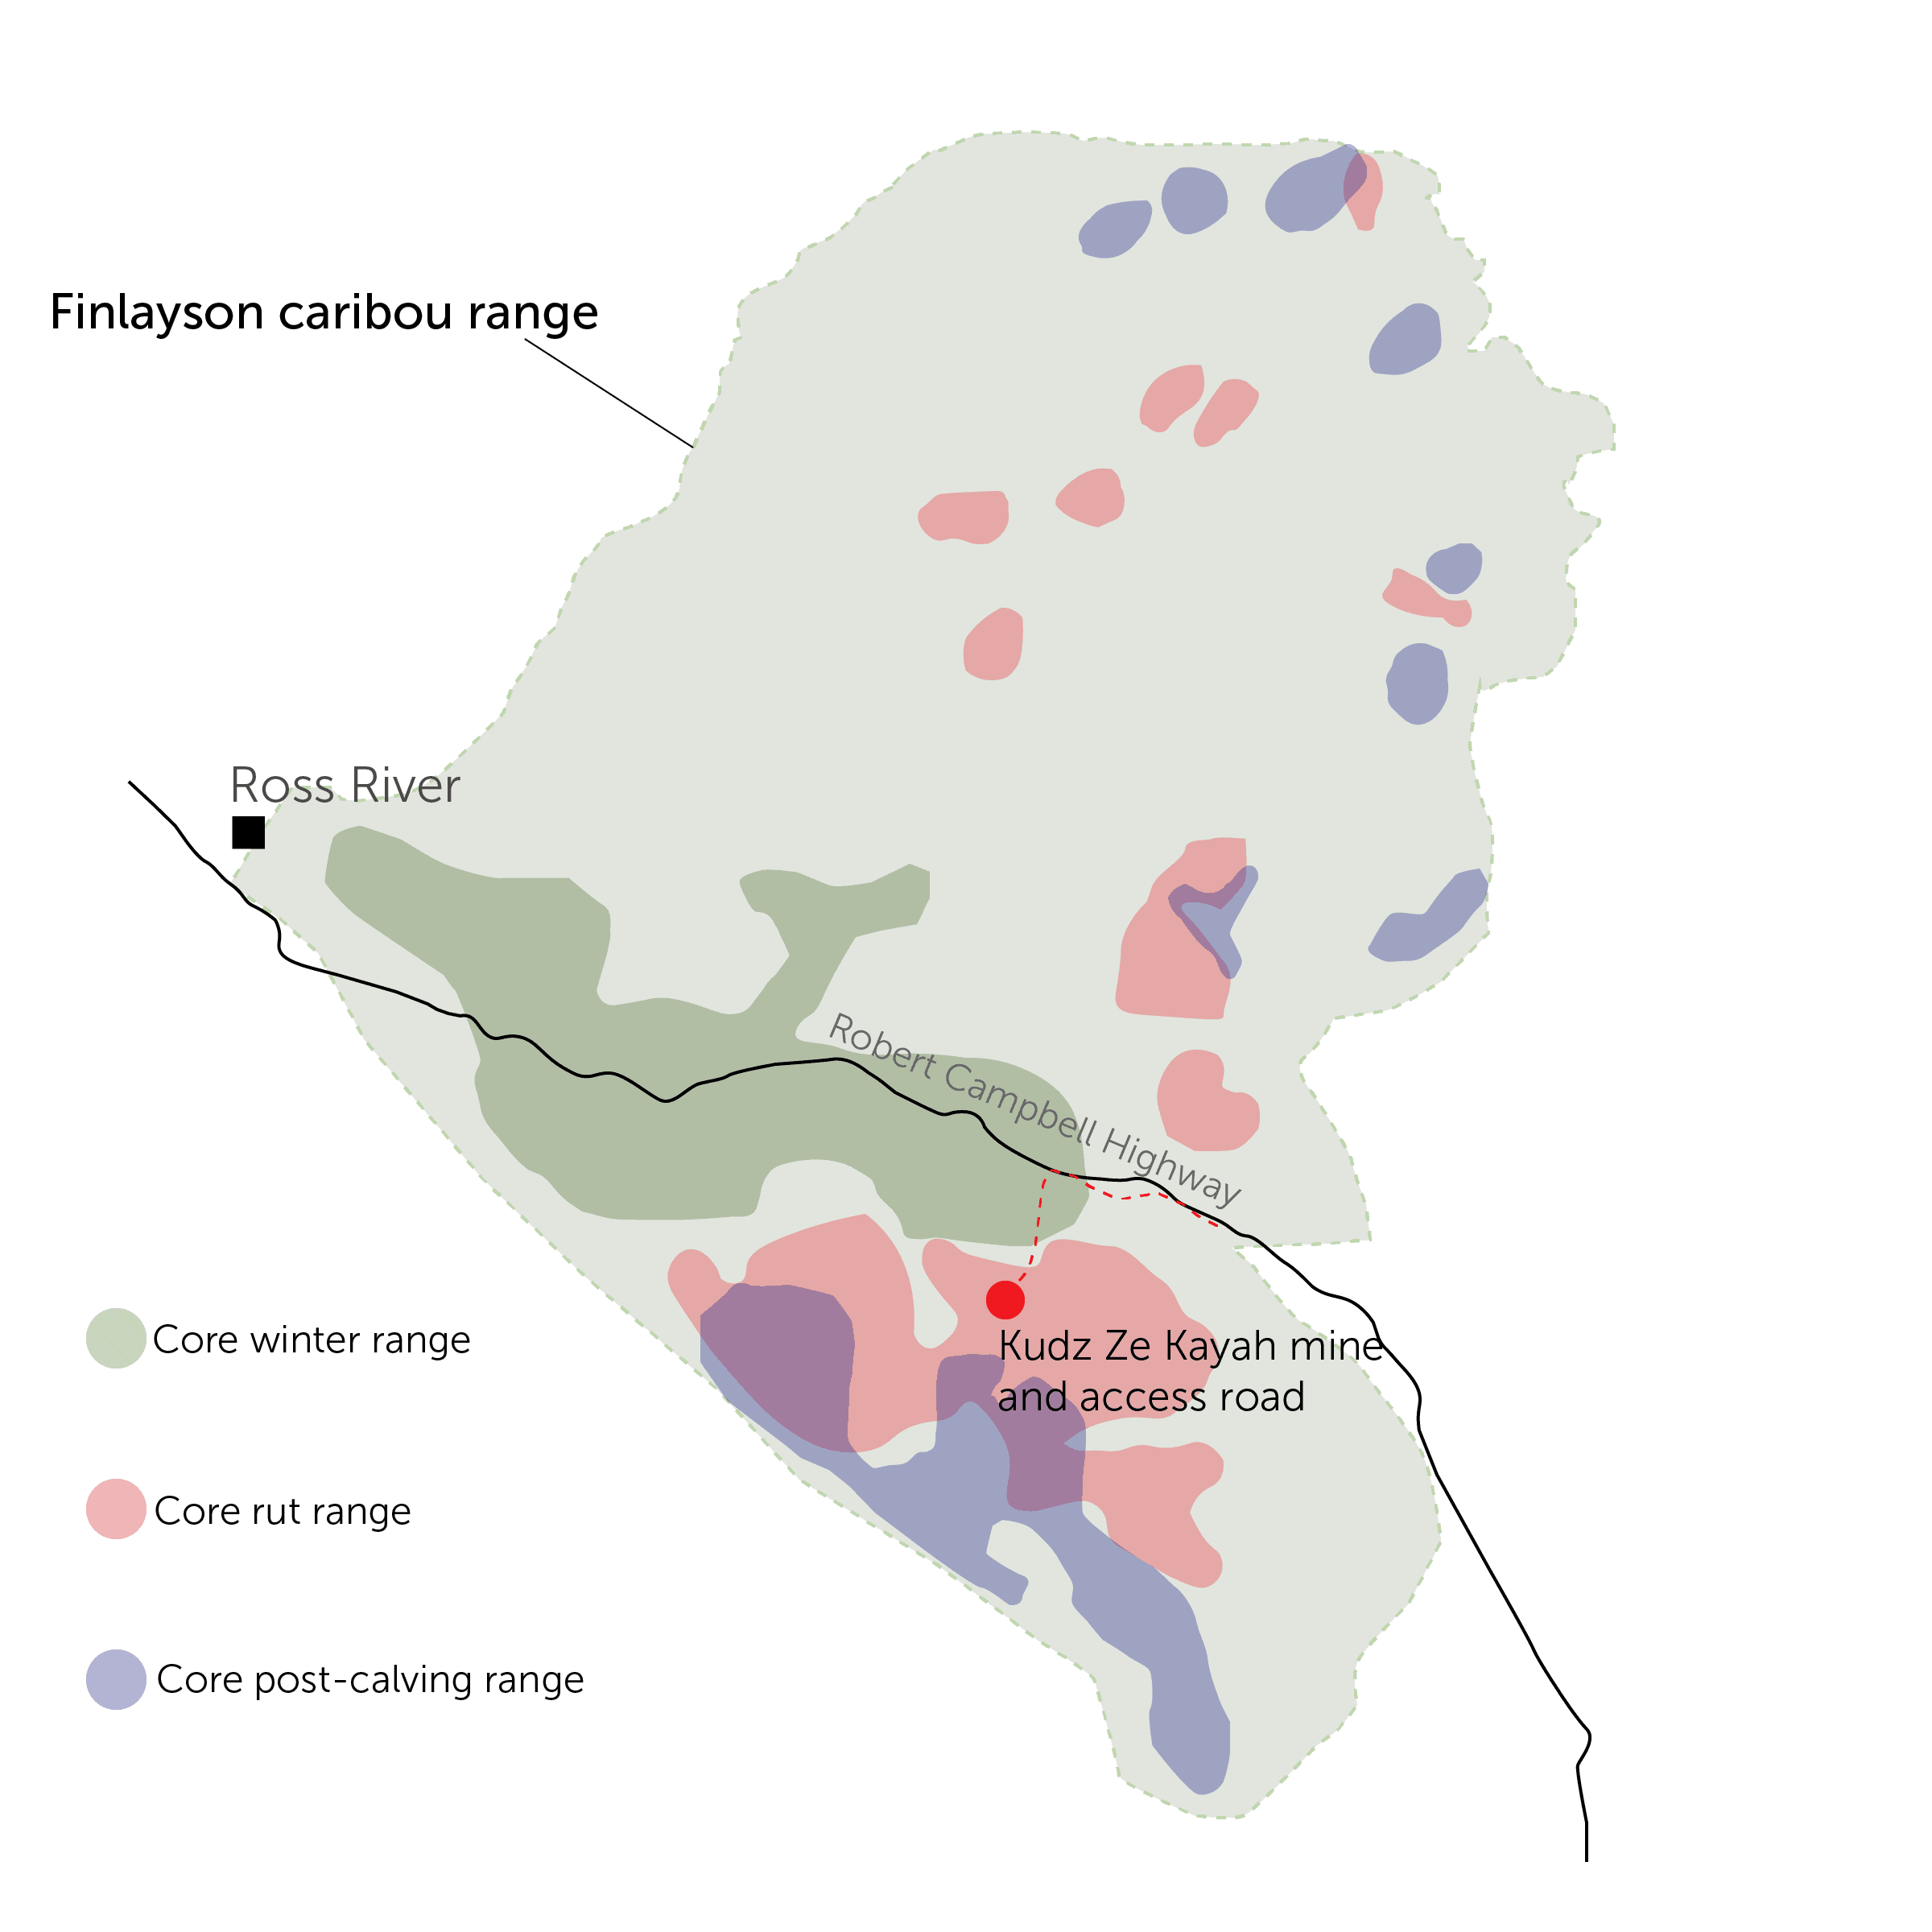 map of the location of the Kudz Ze Kayah mine in the Finlayson caribou herd range